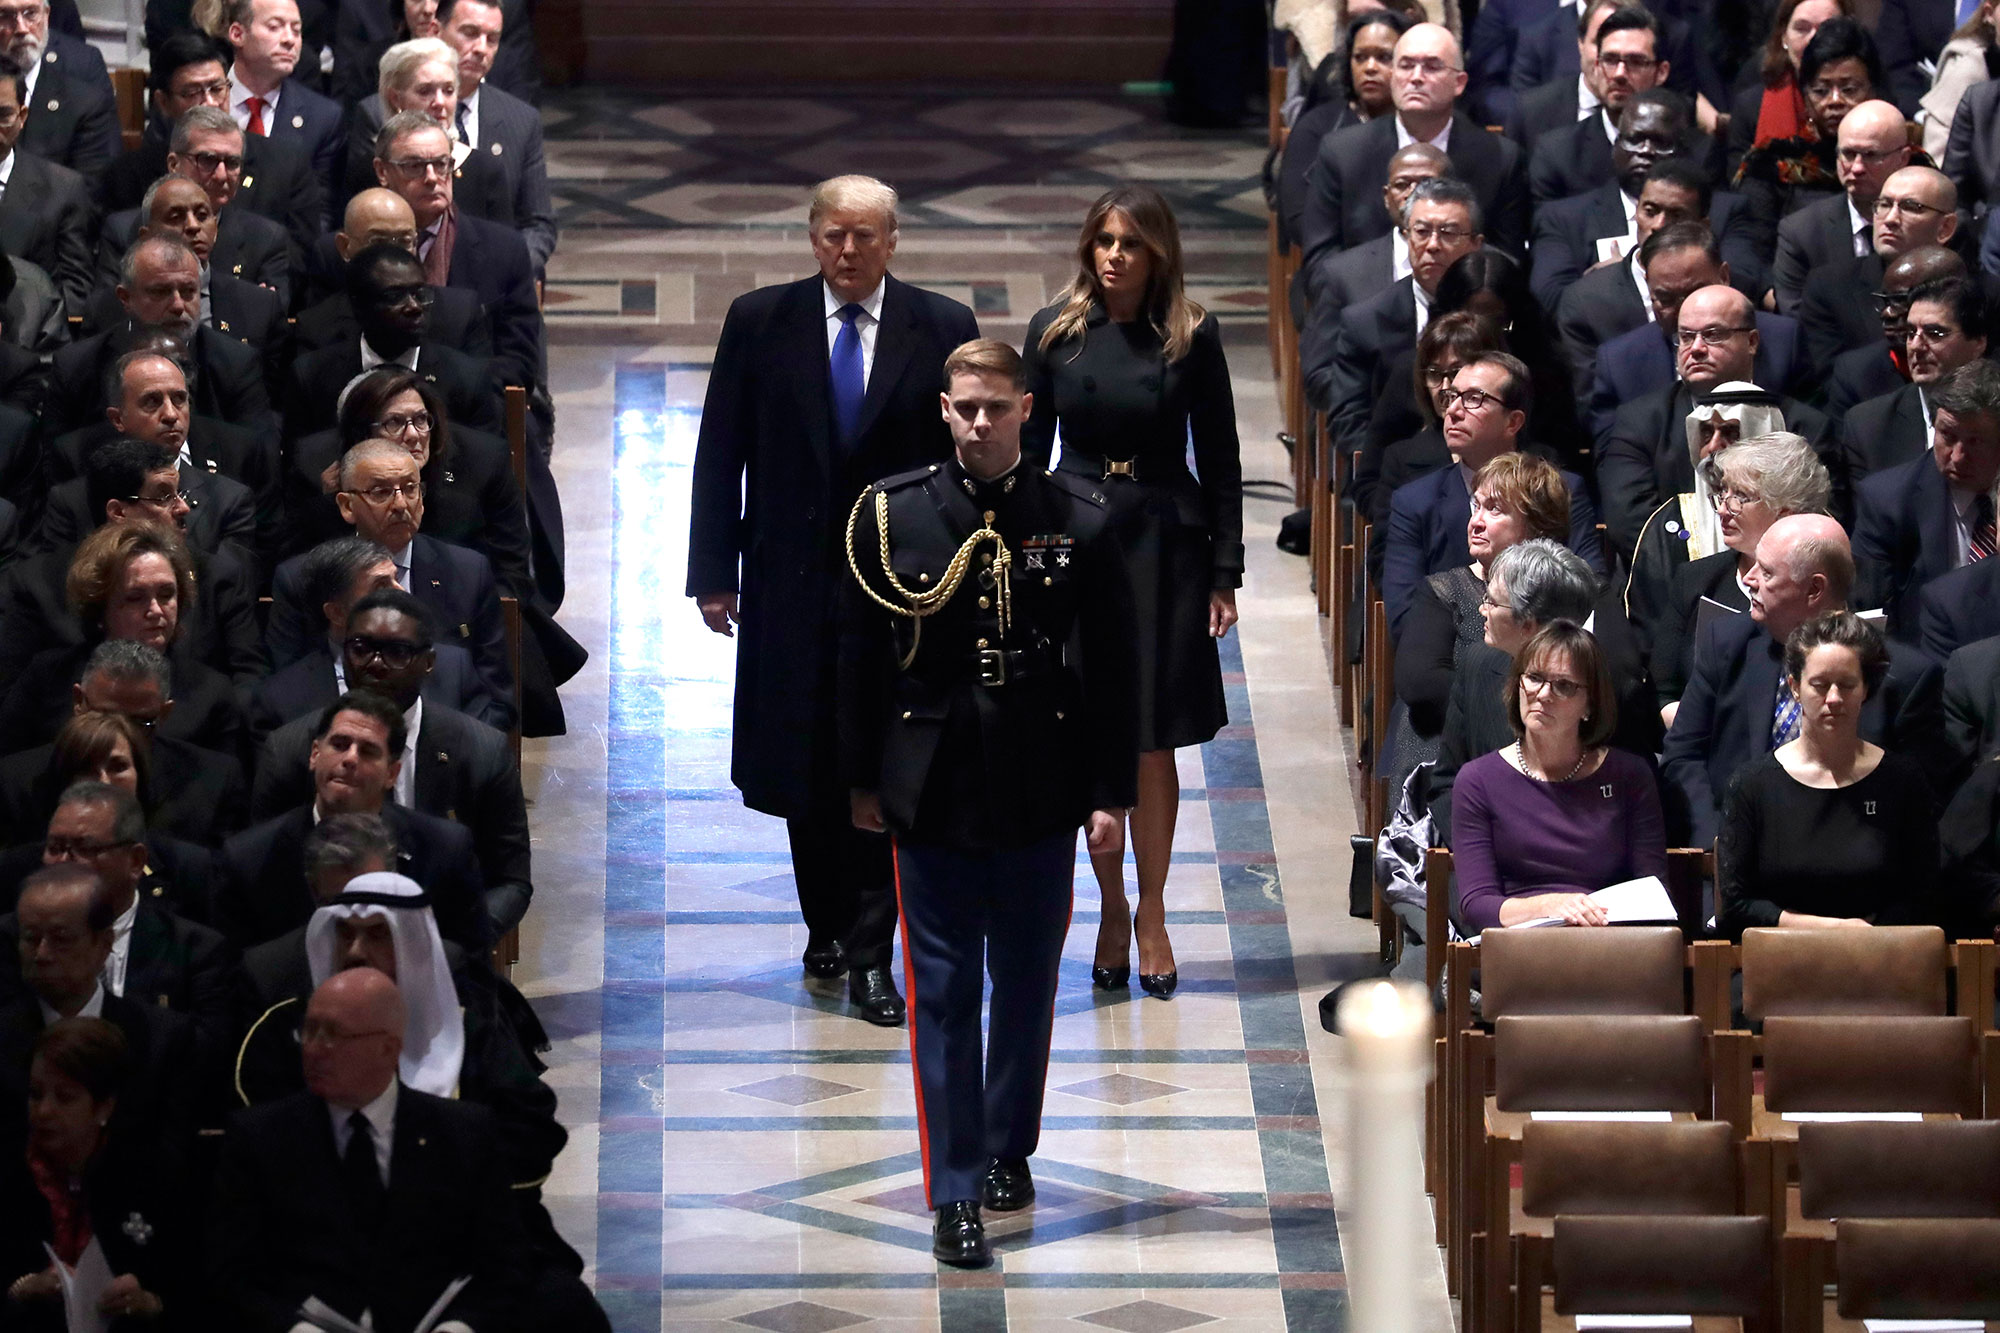 "<div class=""meta image-caption""><div class=""origin-logo origin-image none""><span>none</span></div><span class=""caption-text"">President Donald Trump and first lady Melania Trump arrive for the State Funeral former President George H.W. Bush, at the National Cathedral, Wednesday, Dec. 5, 2018. (Evan Vucci/AP Photo)</span></div>"